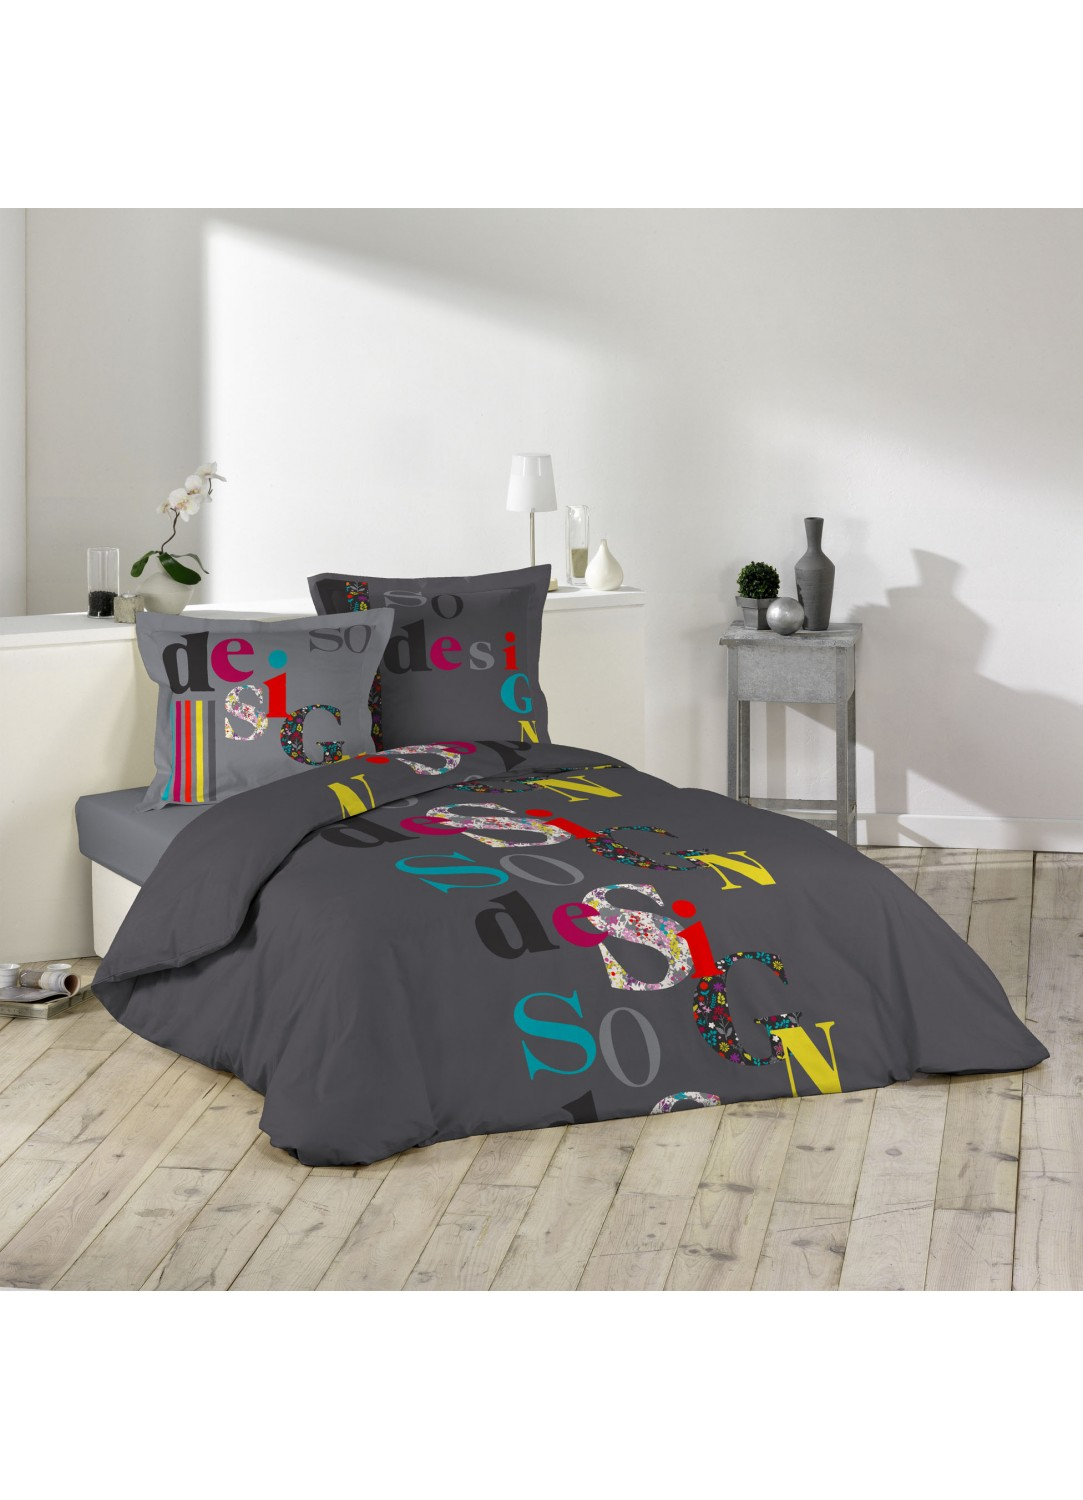 parure de lit imprim e so design multicolors. Black Bedroom Furniture Sets. Home Design Ideas